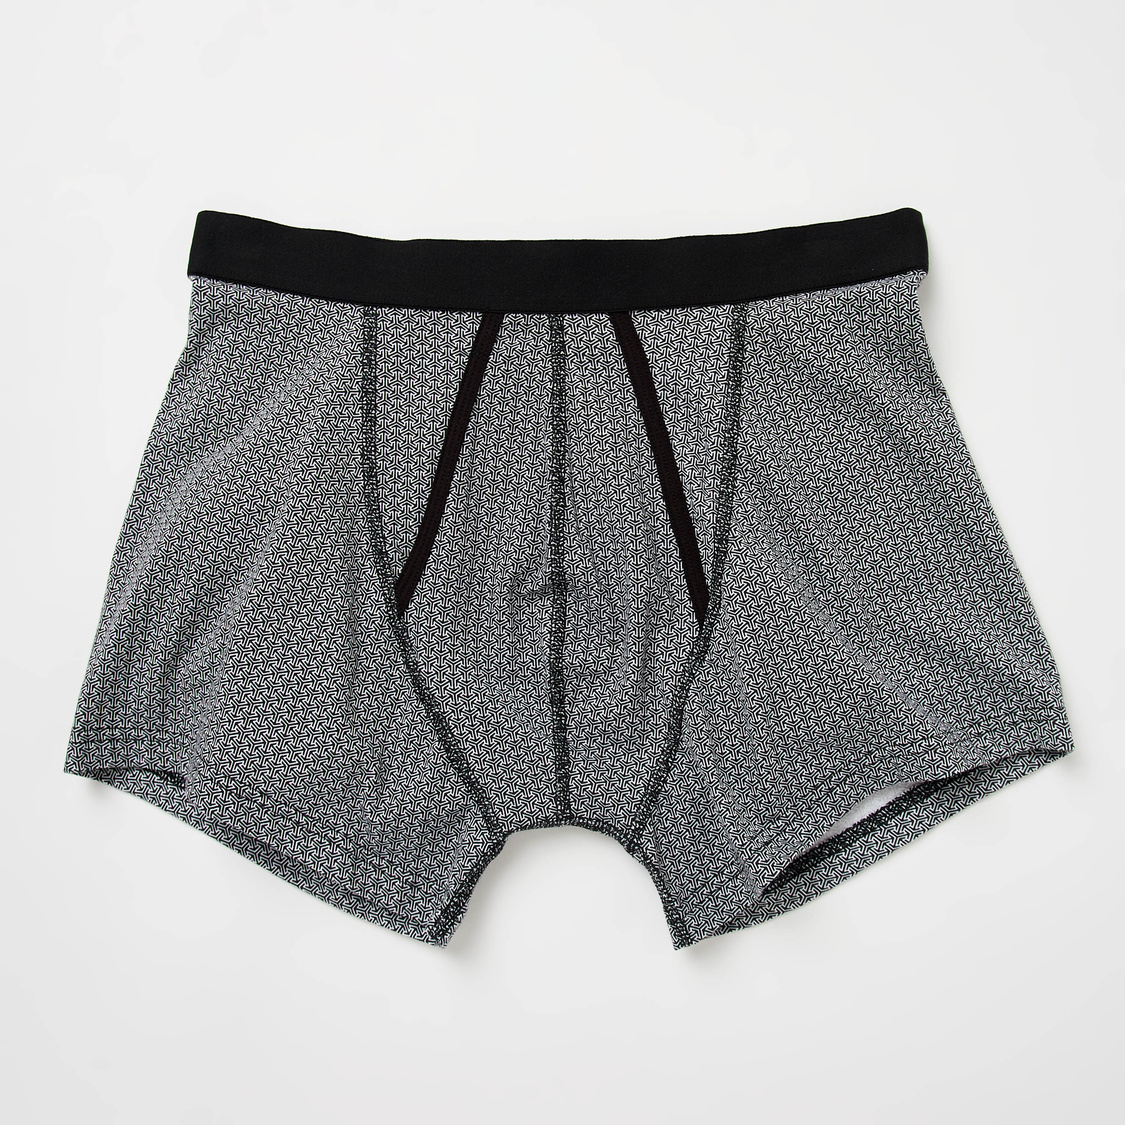 Set of 2 - Textured Boxers with Elasticated Waistband